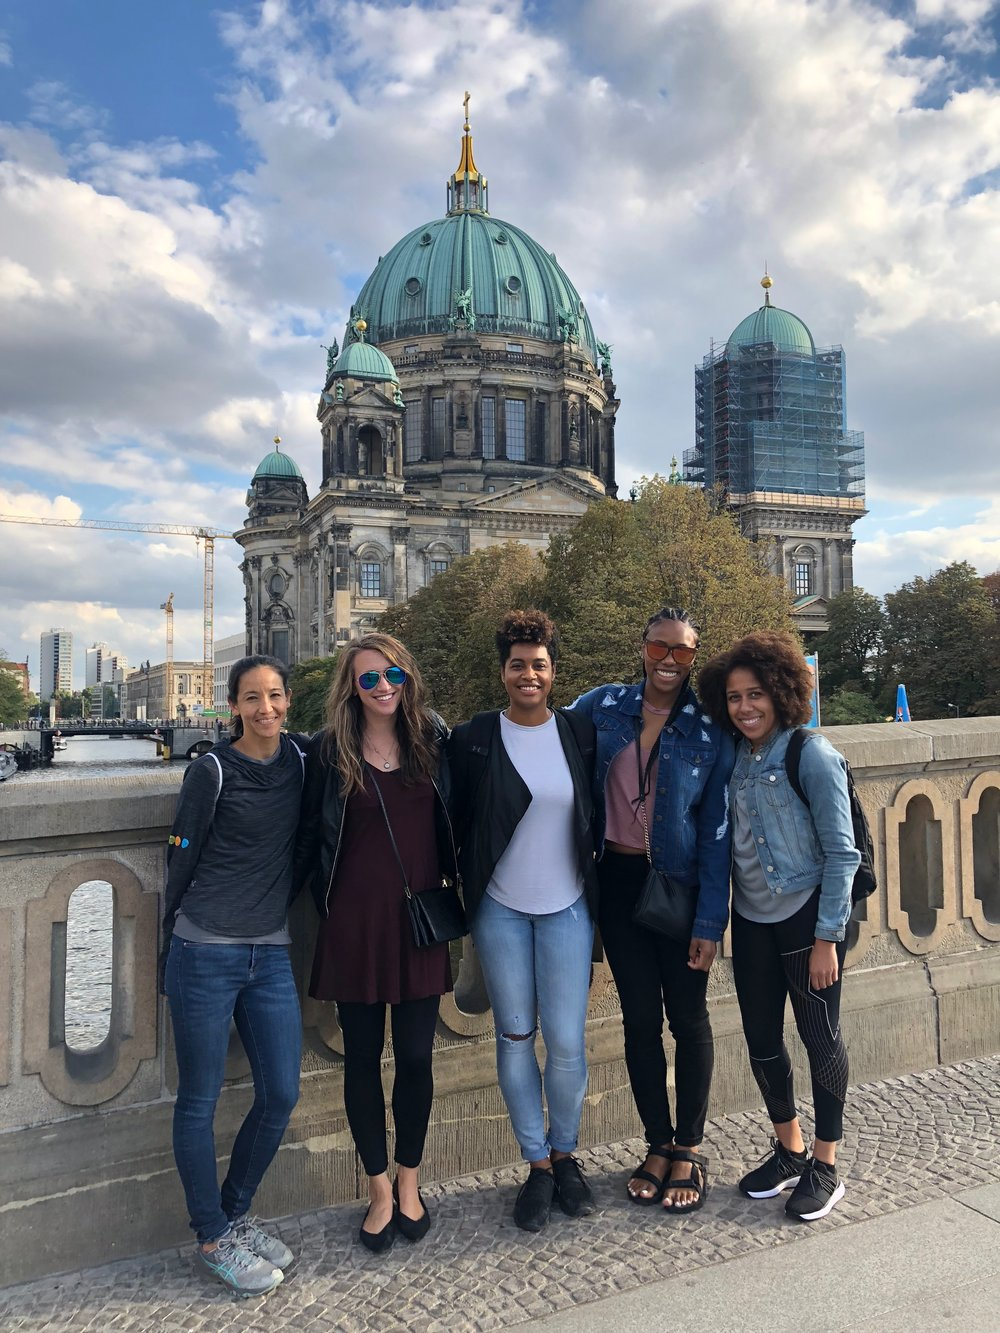 Sightseeing with fellow runners at the Berlin Cathedral.